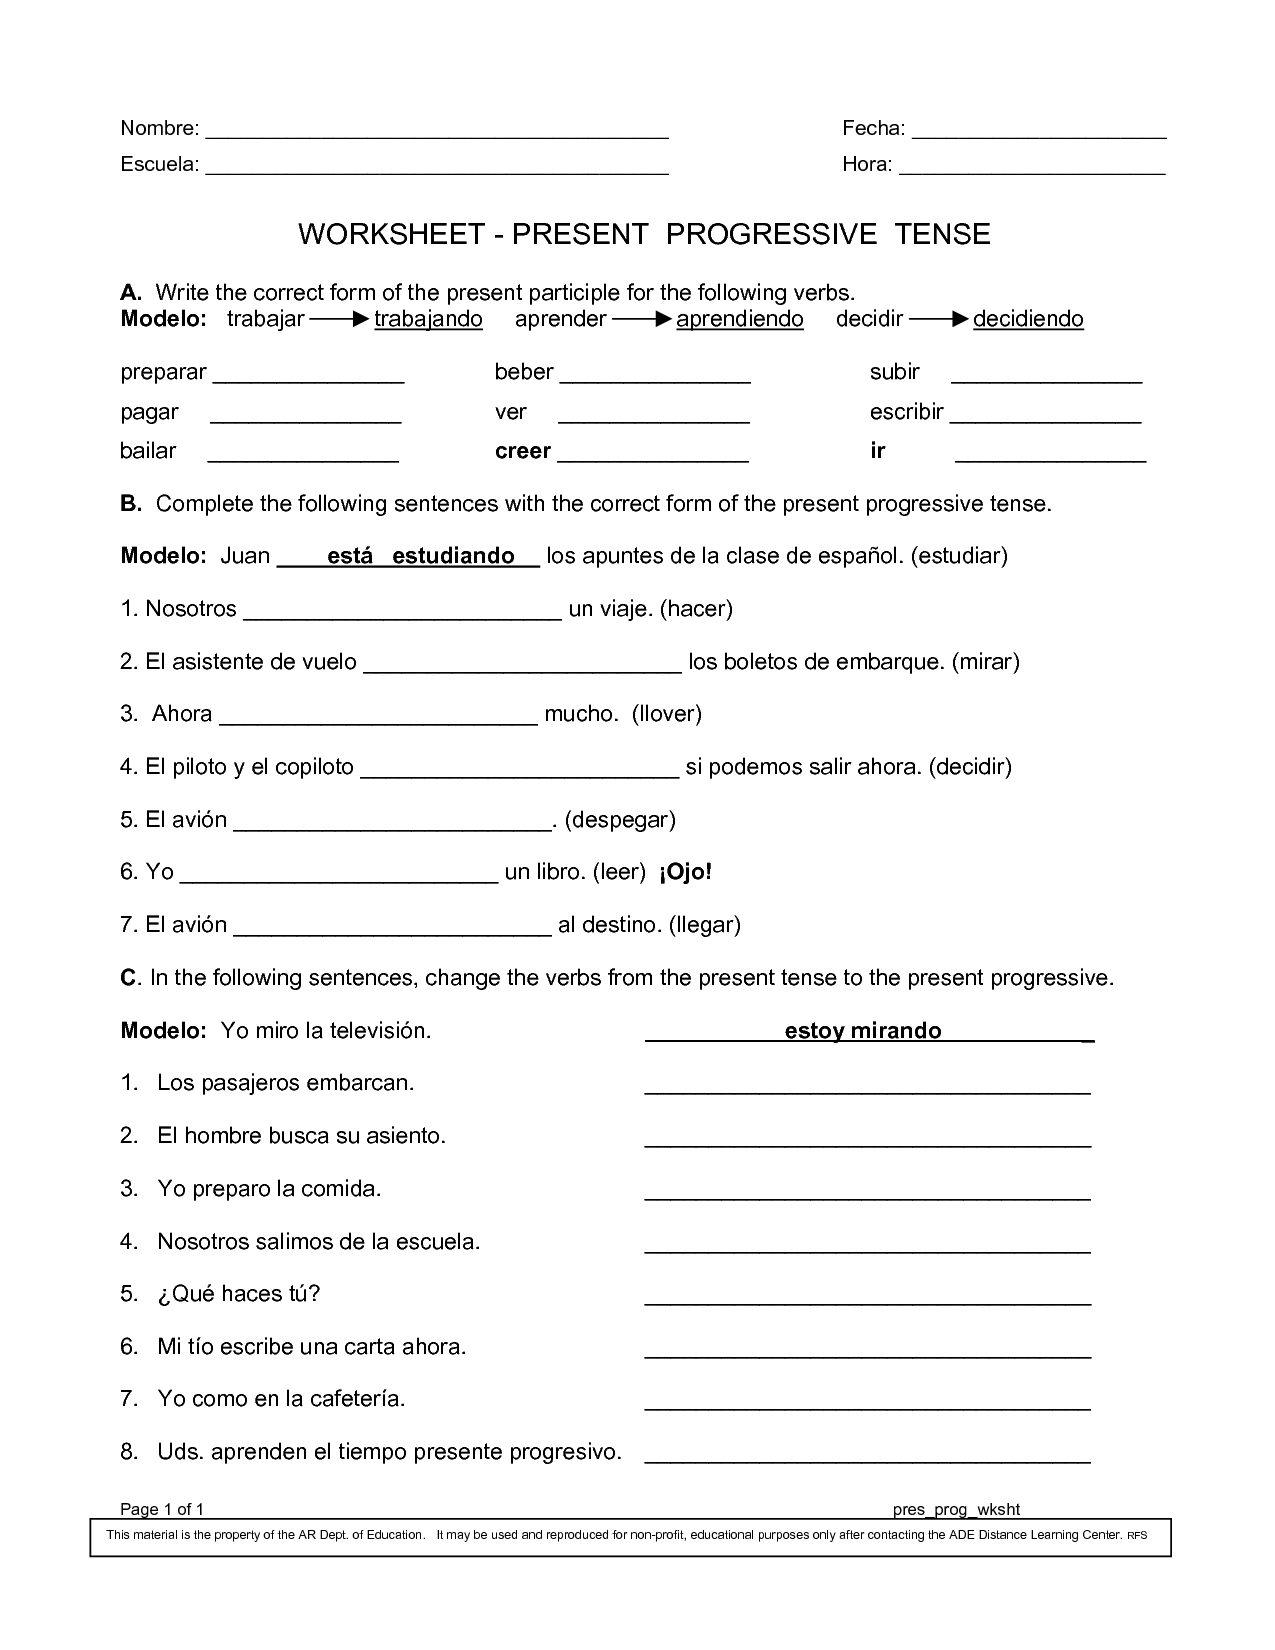 Worksheets Spanish Worksheets For High School spanish worksheets printables present progressive worksheet worksheet